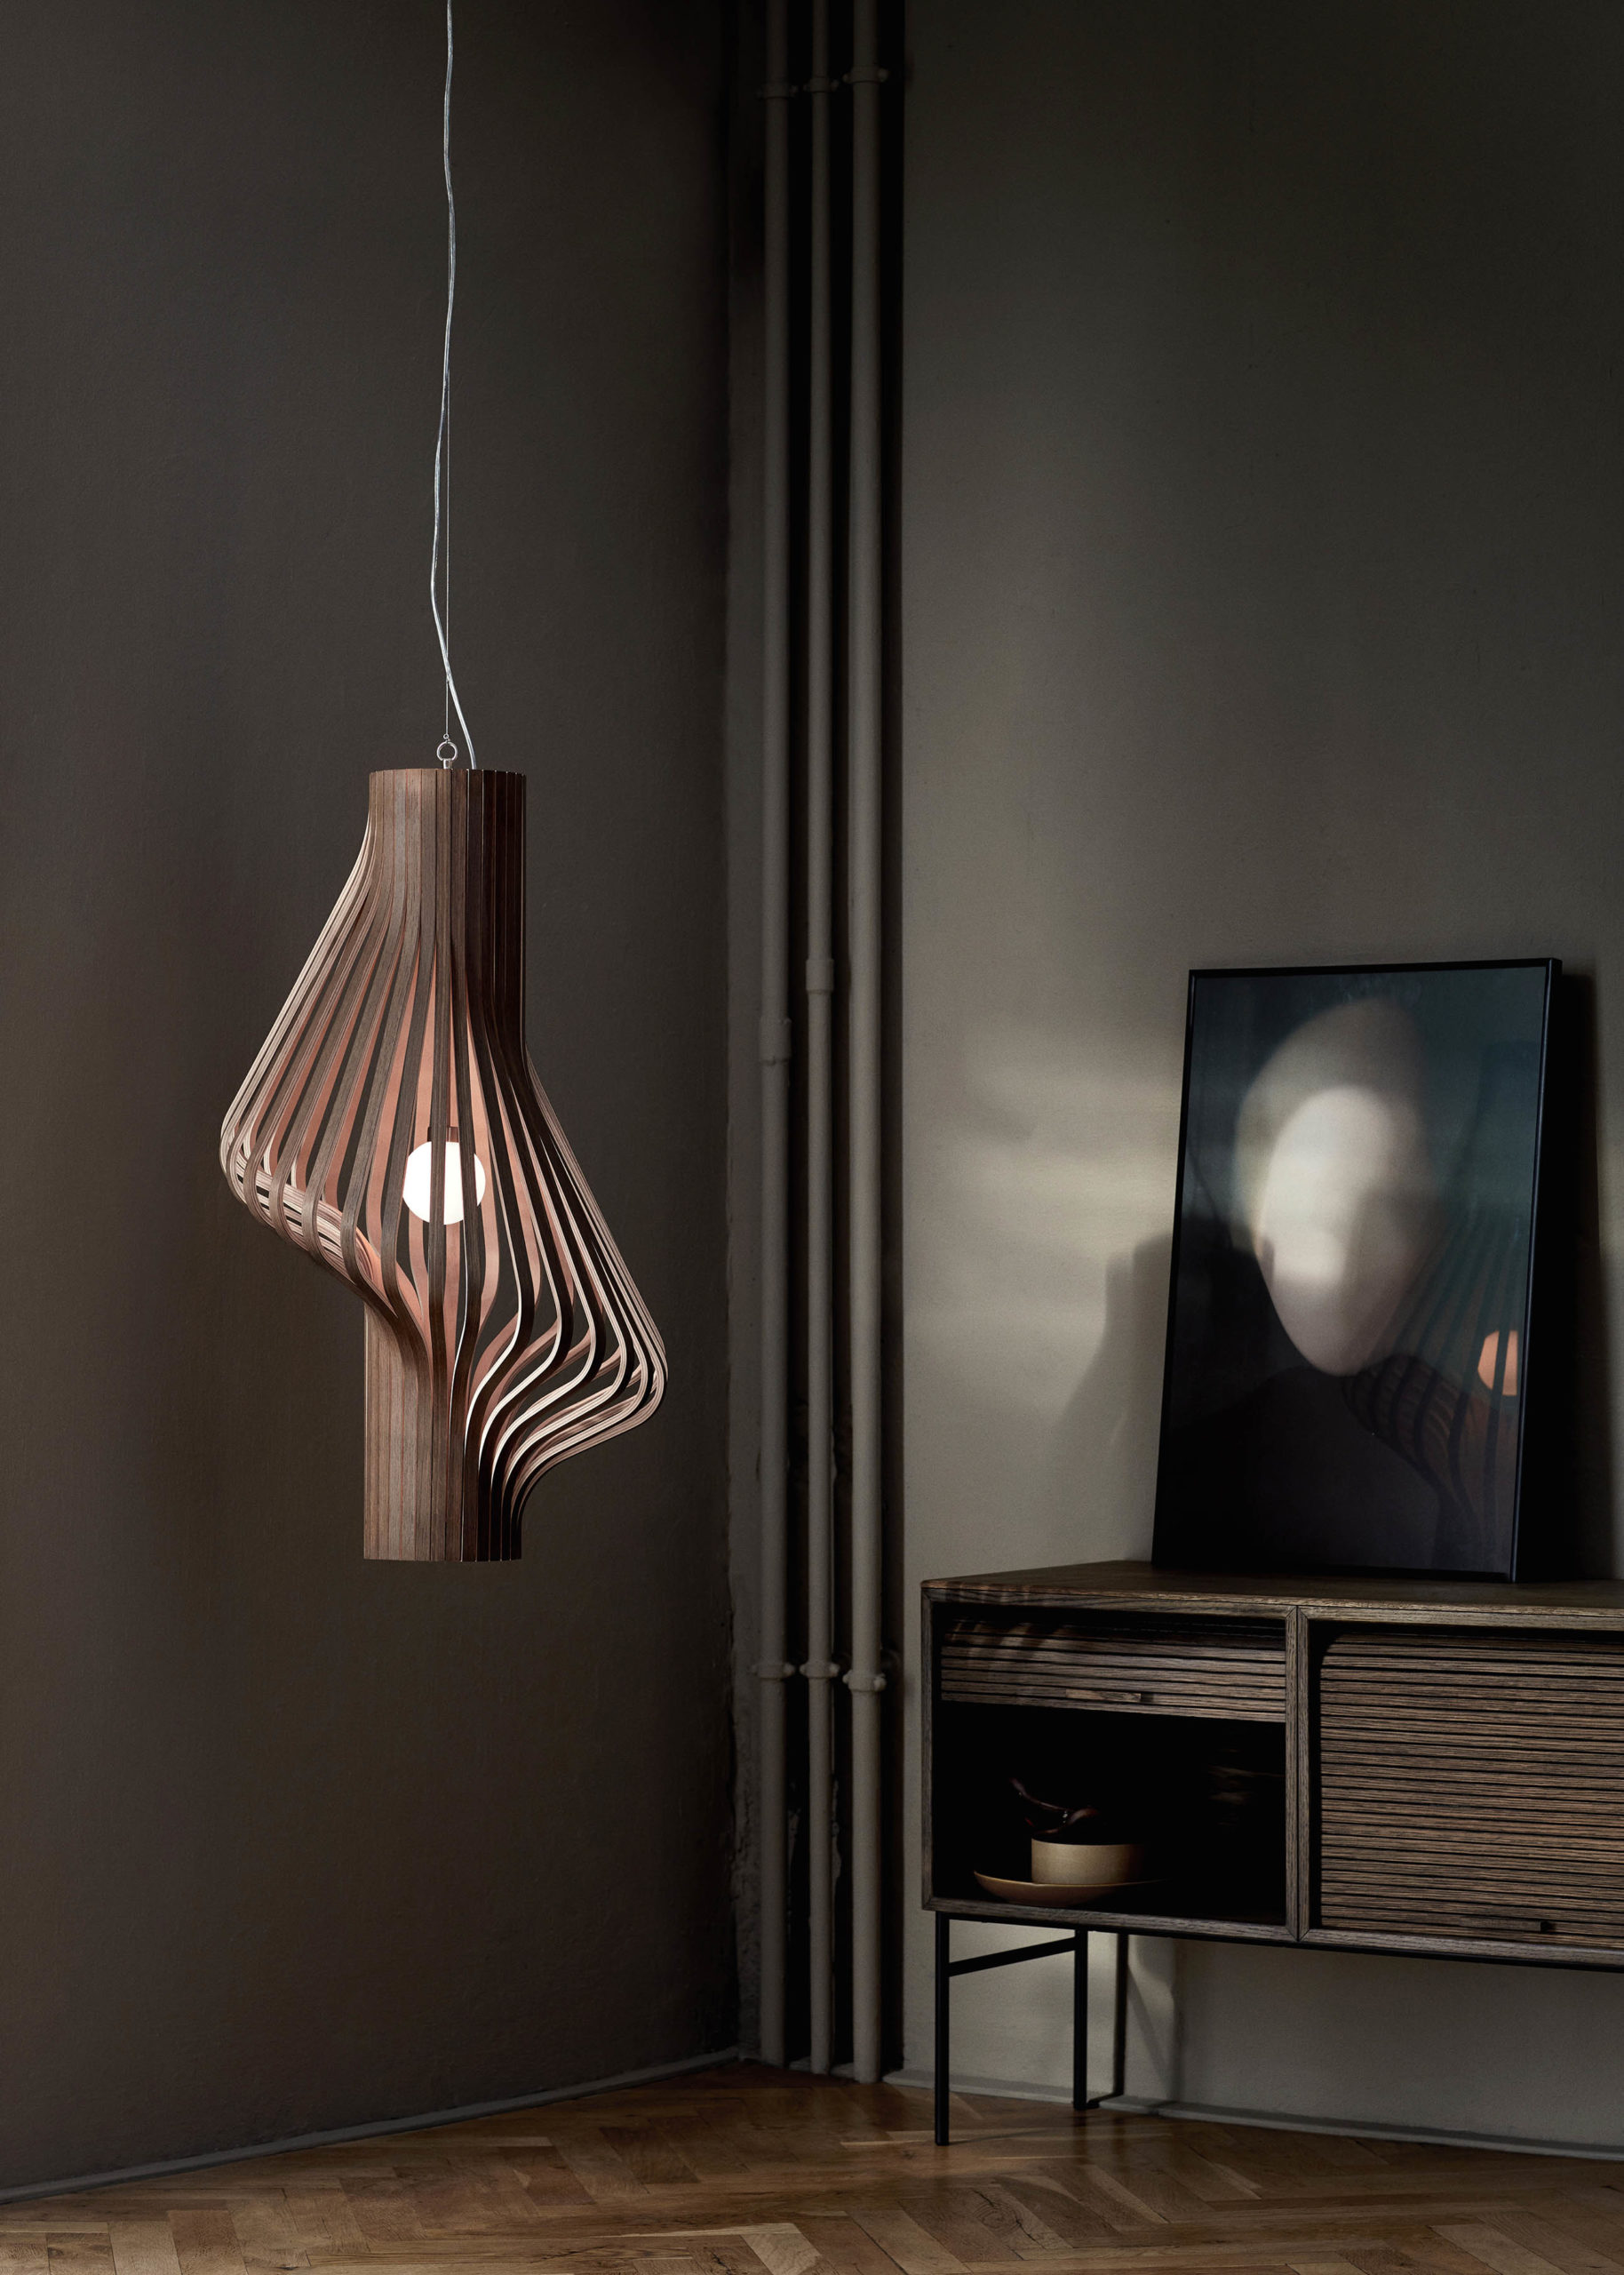 Diva_smoked_oak_pendant - Northern_photo_Chris_Tonnesen - Low